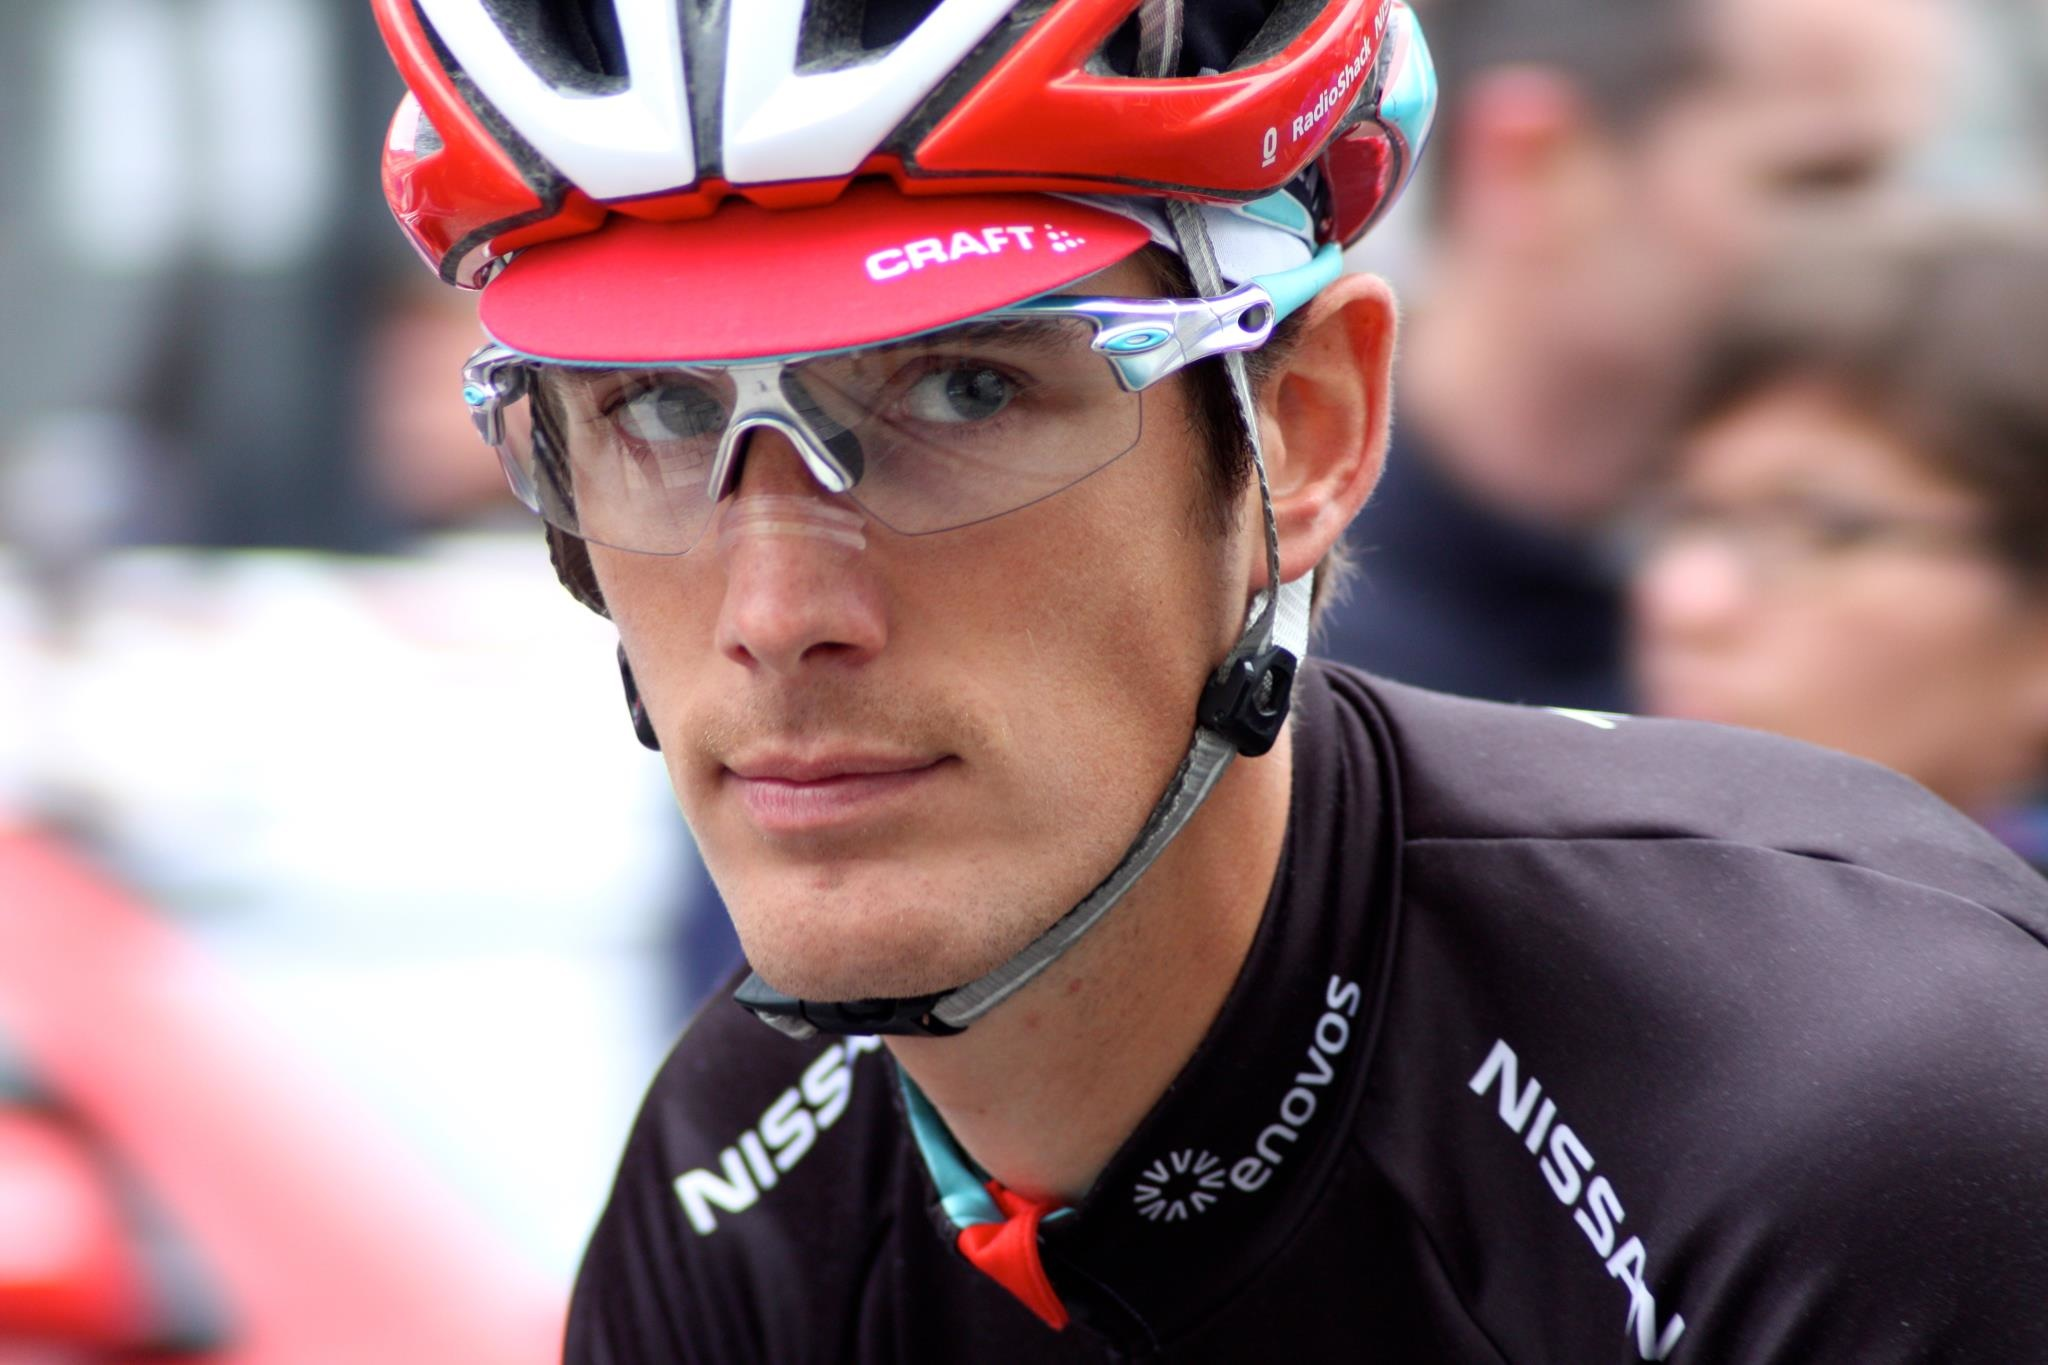 Interview with Andy Schleck